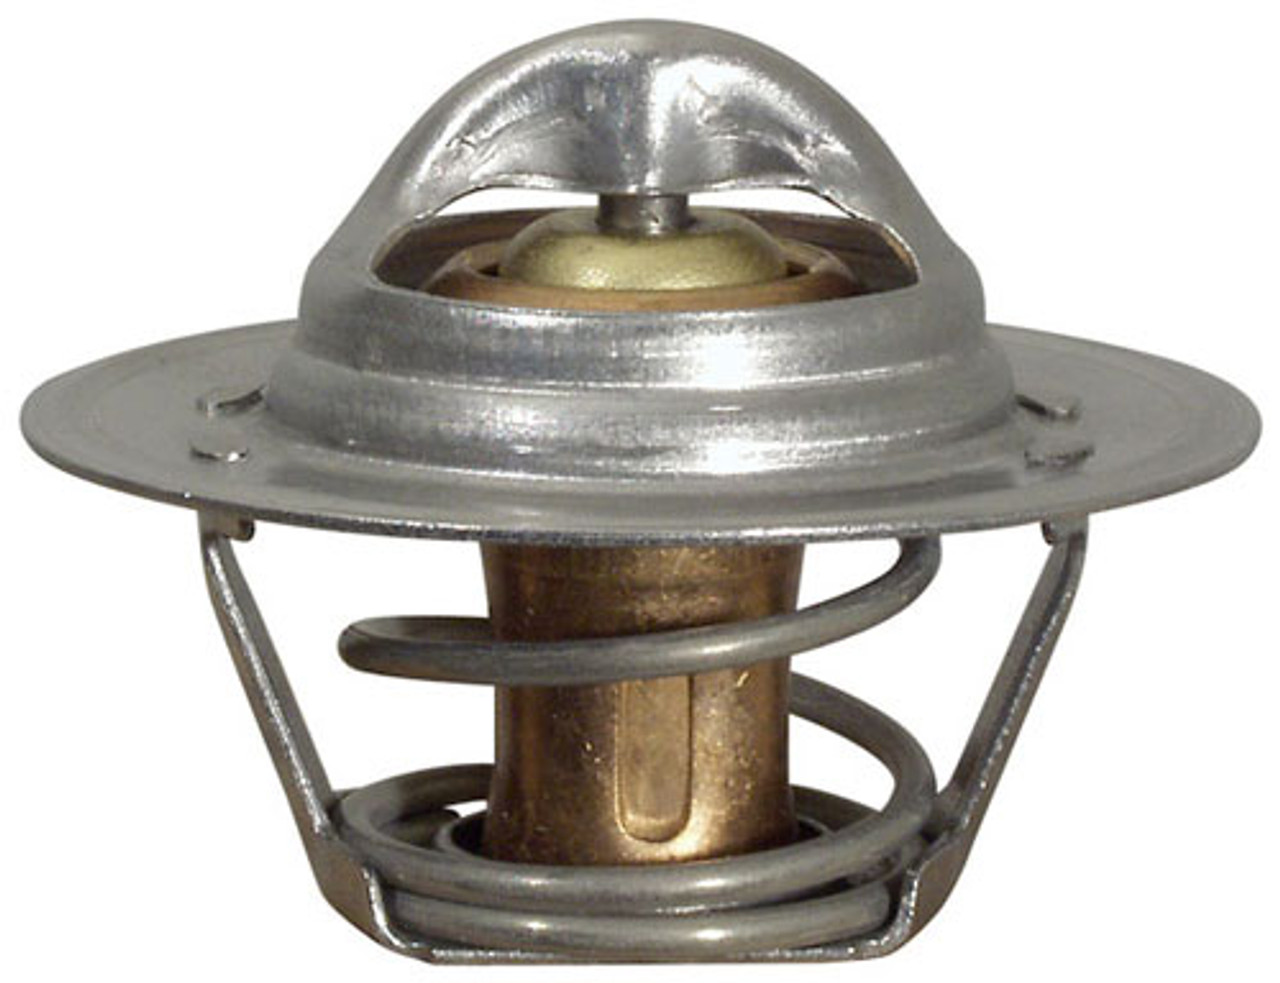 MD972905 Type E Mitsi/Cat Gasket Thermostat for 4G33, 52, 54, 63 & 64 Engines 180° Temp